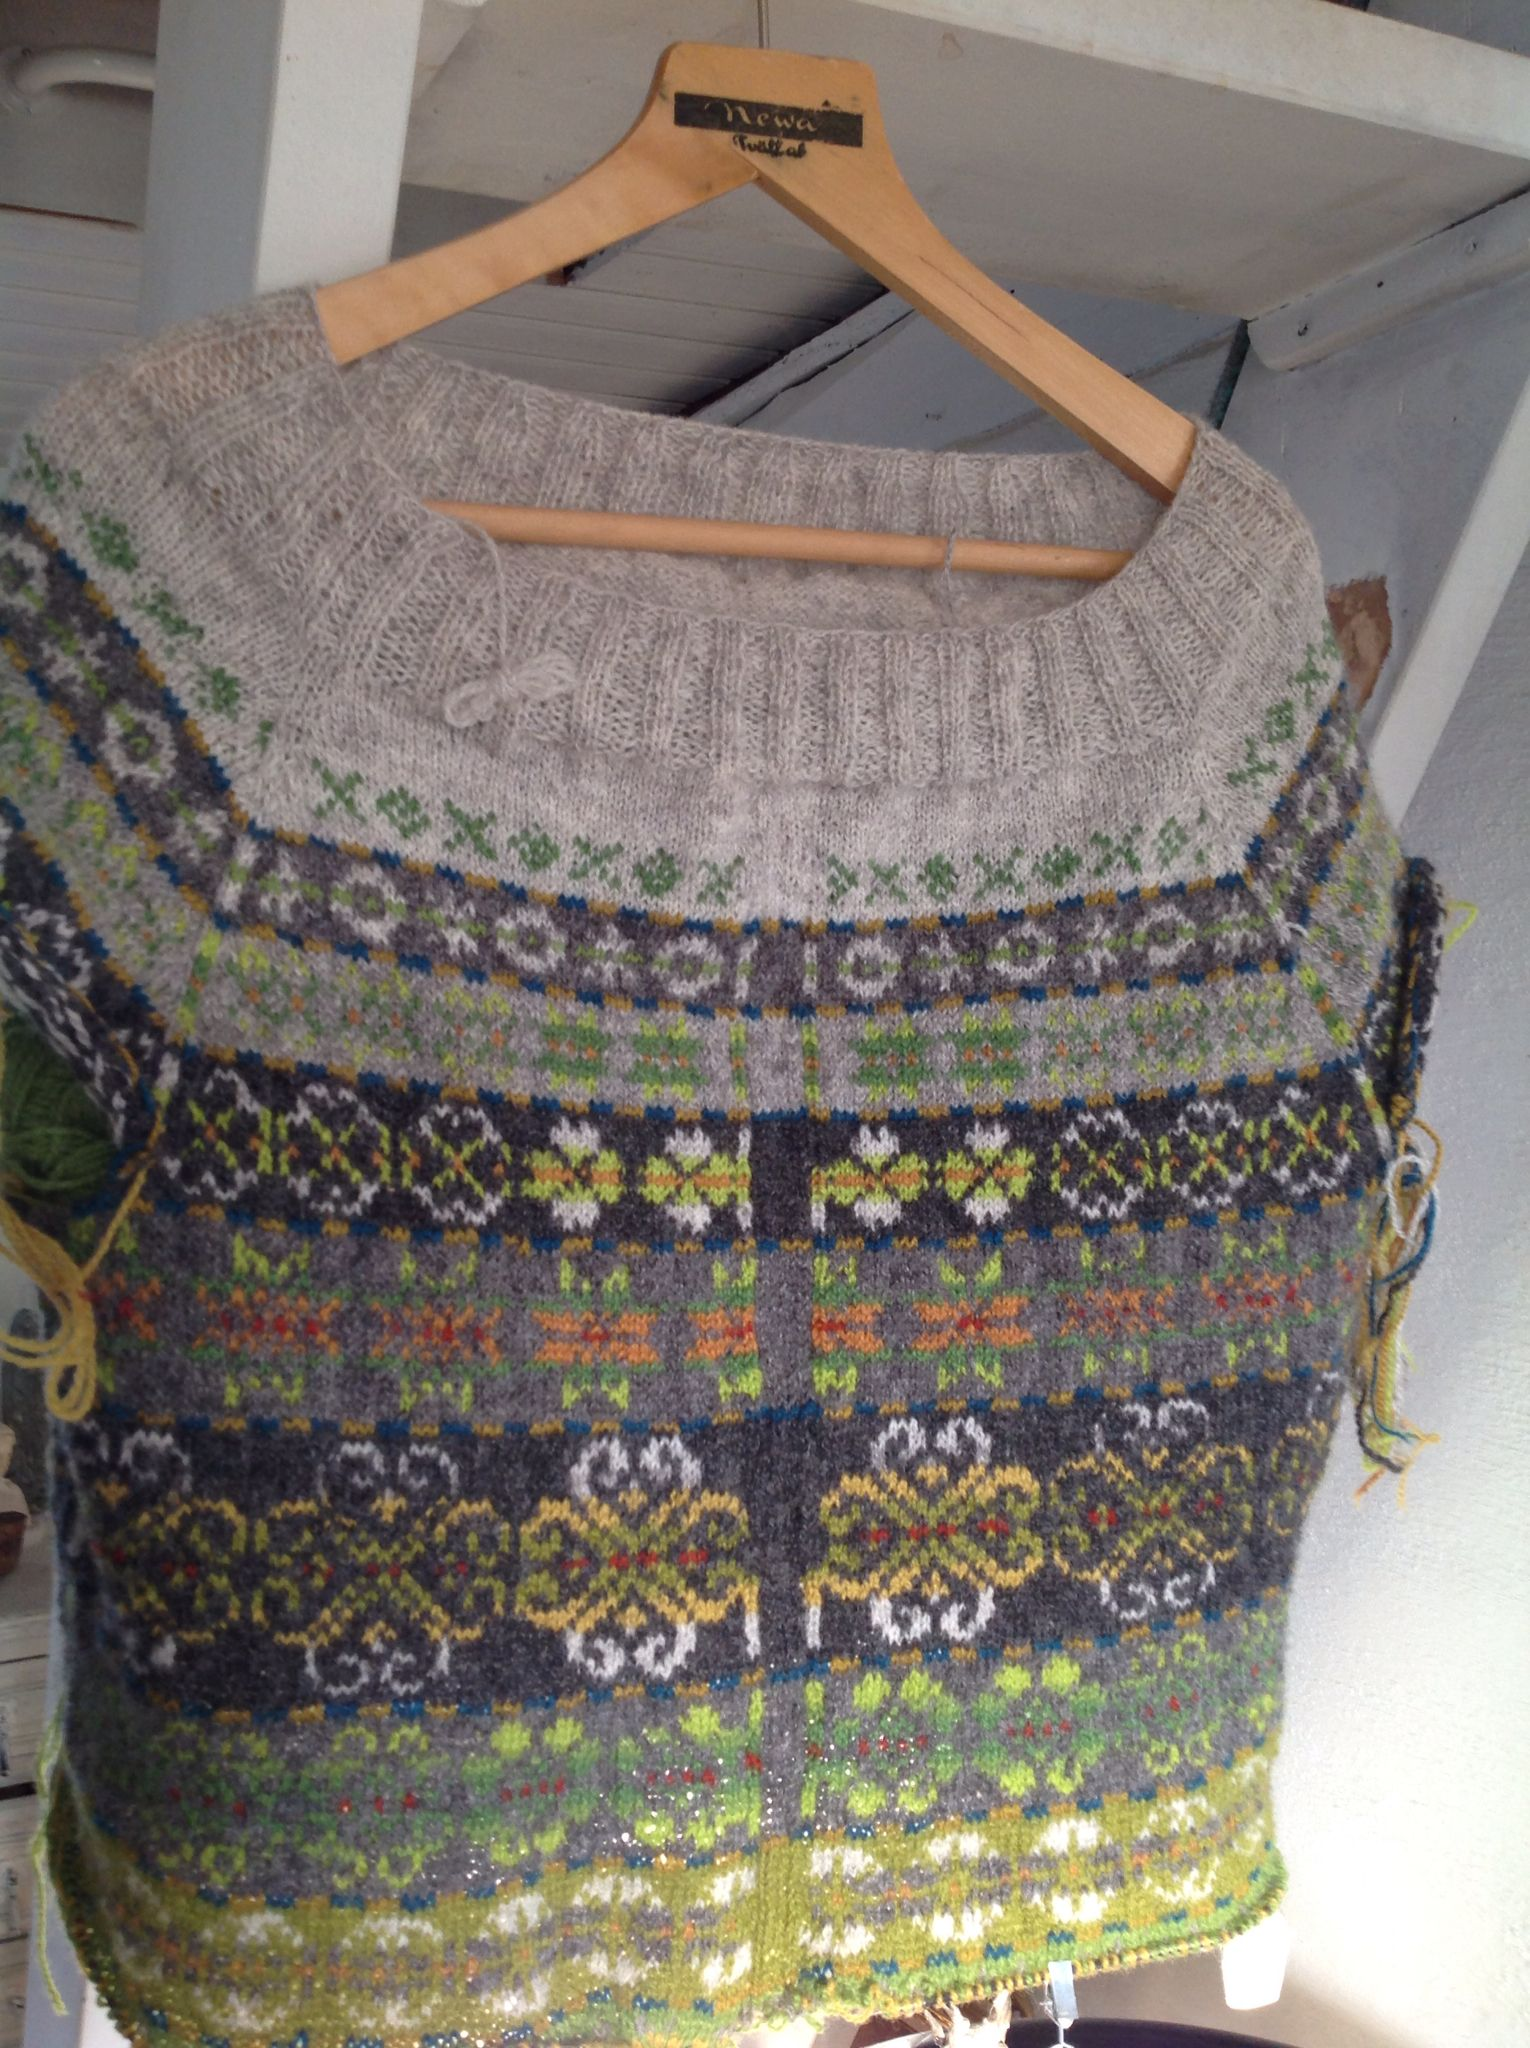 My Next year in Lerwick cardigan is coming along lovely. Im inspired by the colours of the Swedish forest. Rocks , moss and lichens, ferns and lush green. I wanted the pattern to change between subtle and more distinct. Happy so far. Design Tori Seierstad, pattern from Ravelry.